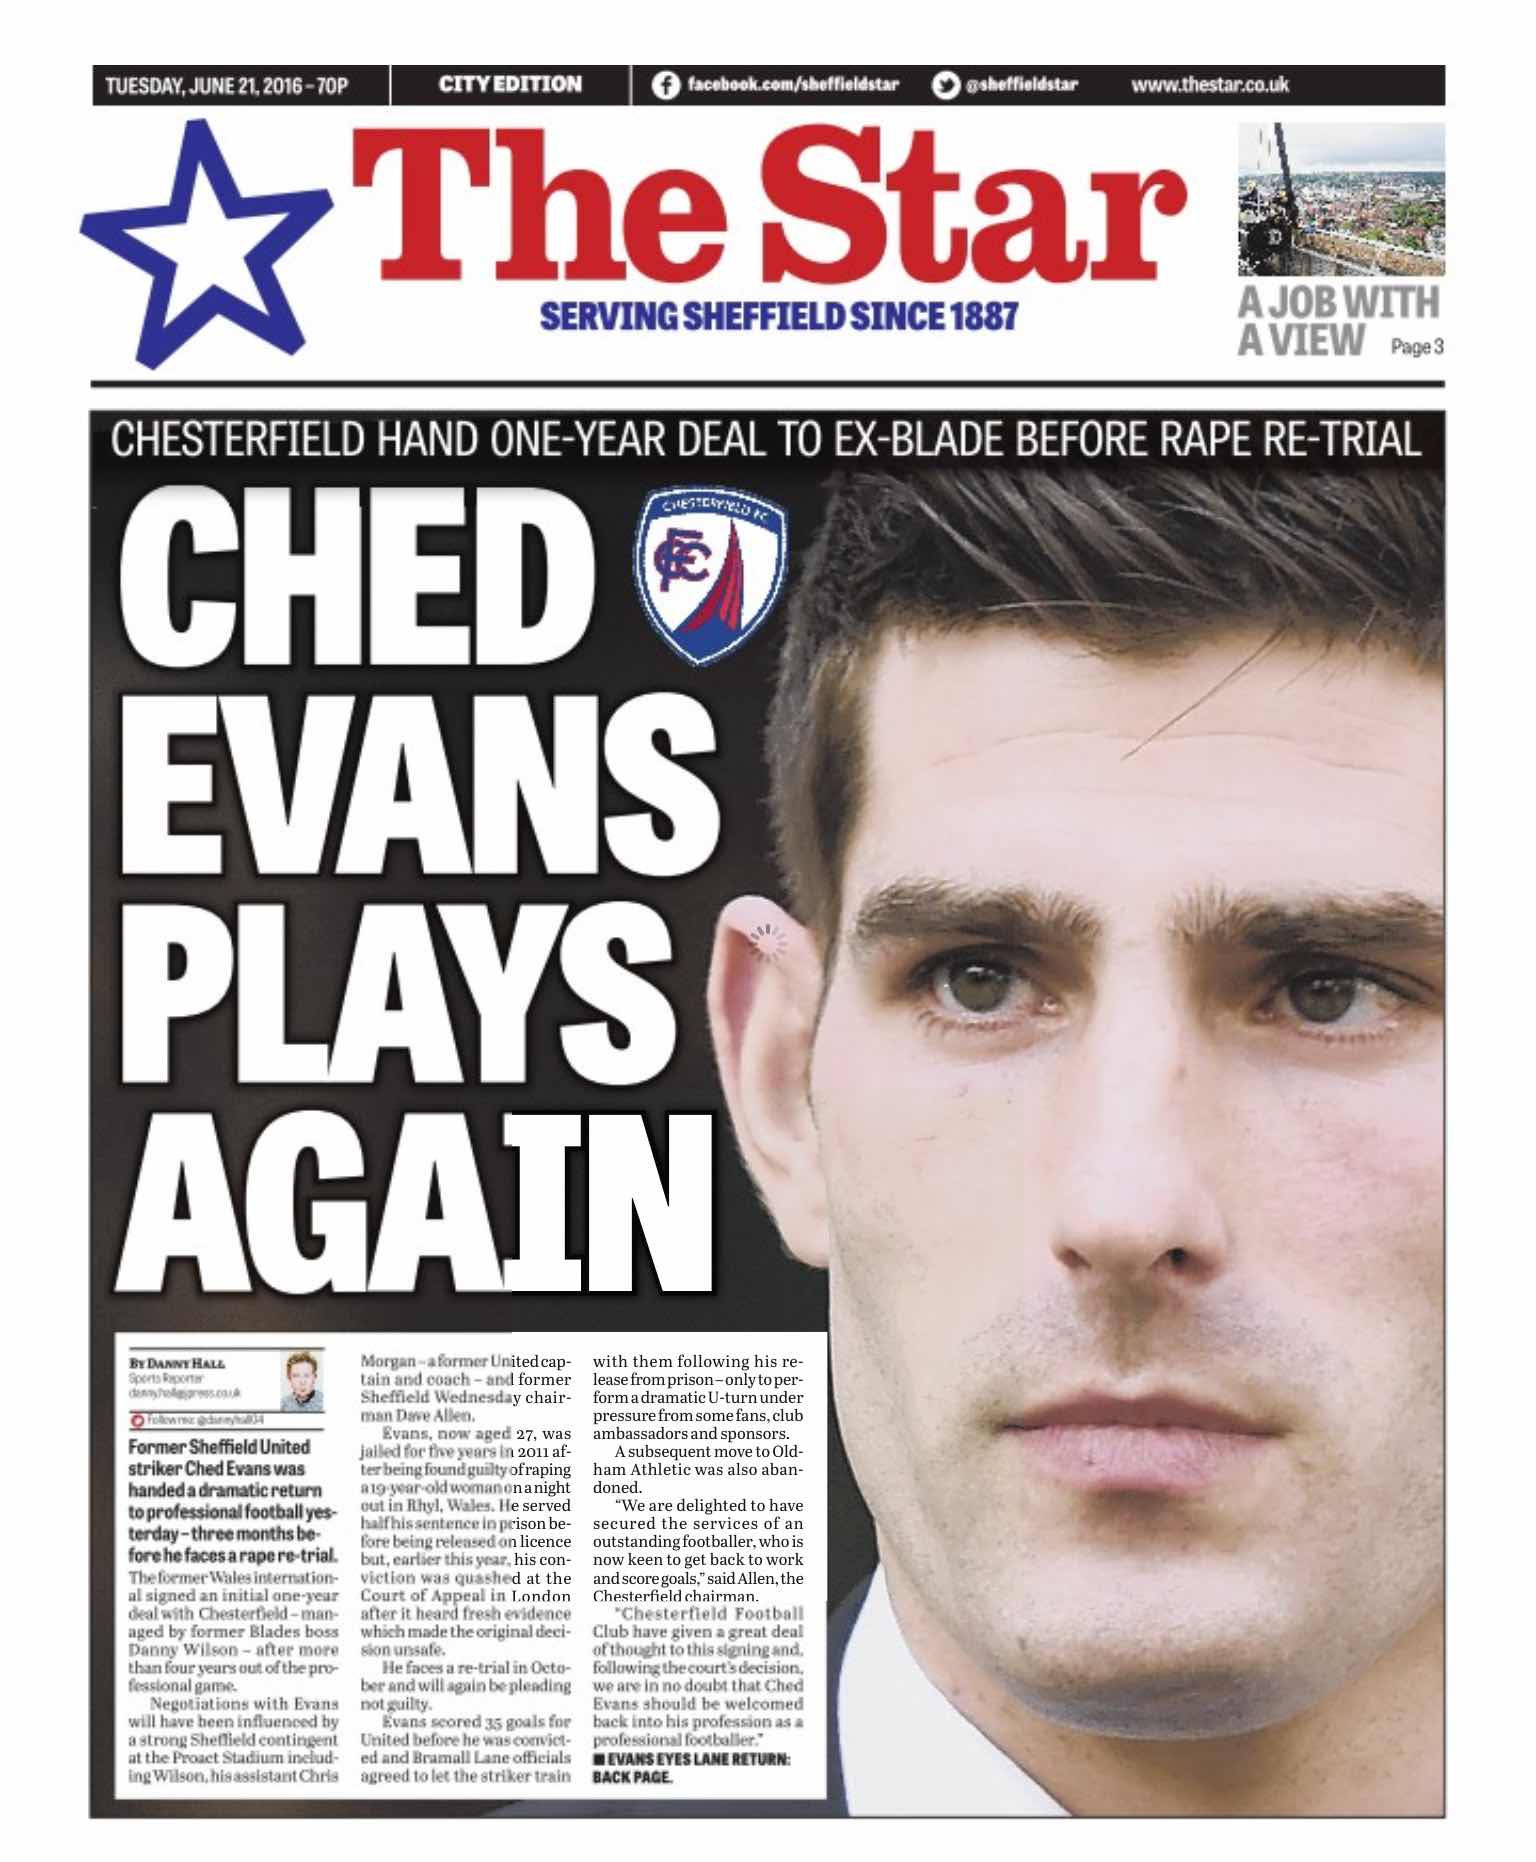 BACK IN the HEADLINES:  CHED EVANS